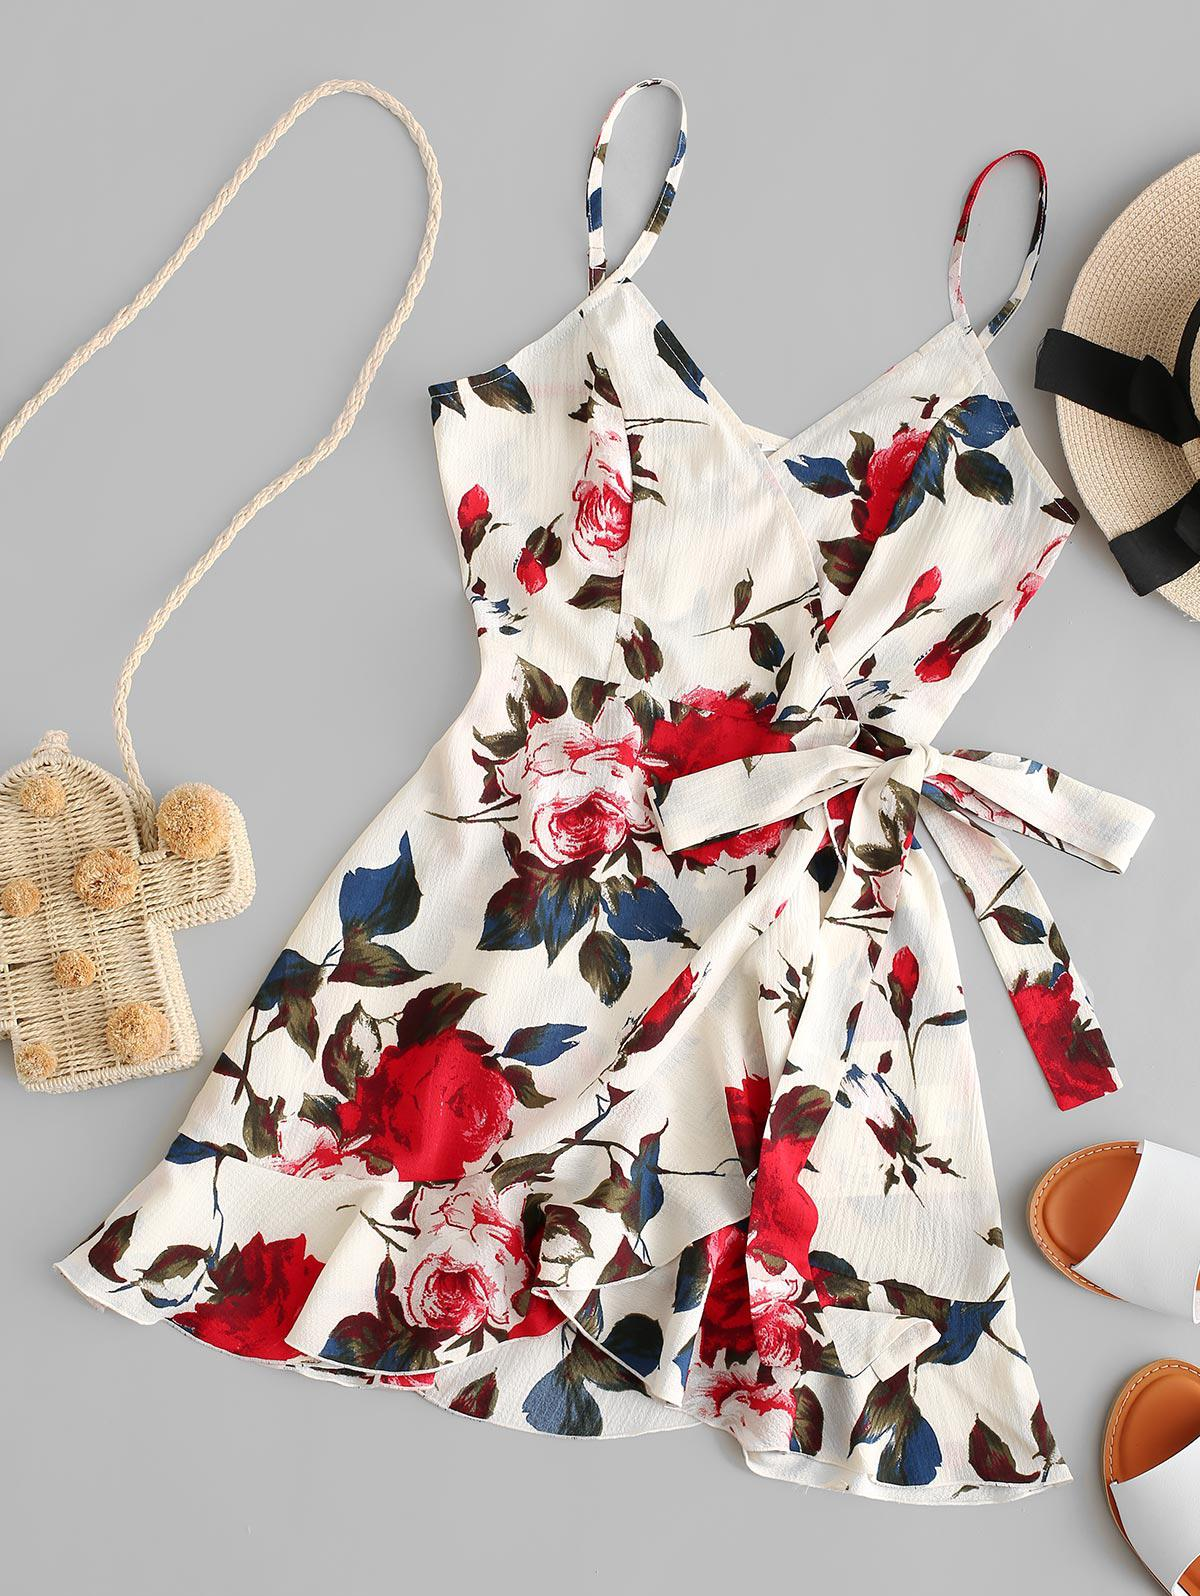 ZAFUL Floral Print Ruffles Mini Wrap Dress